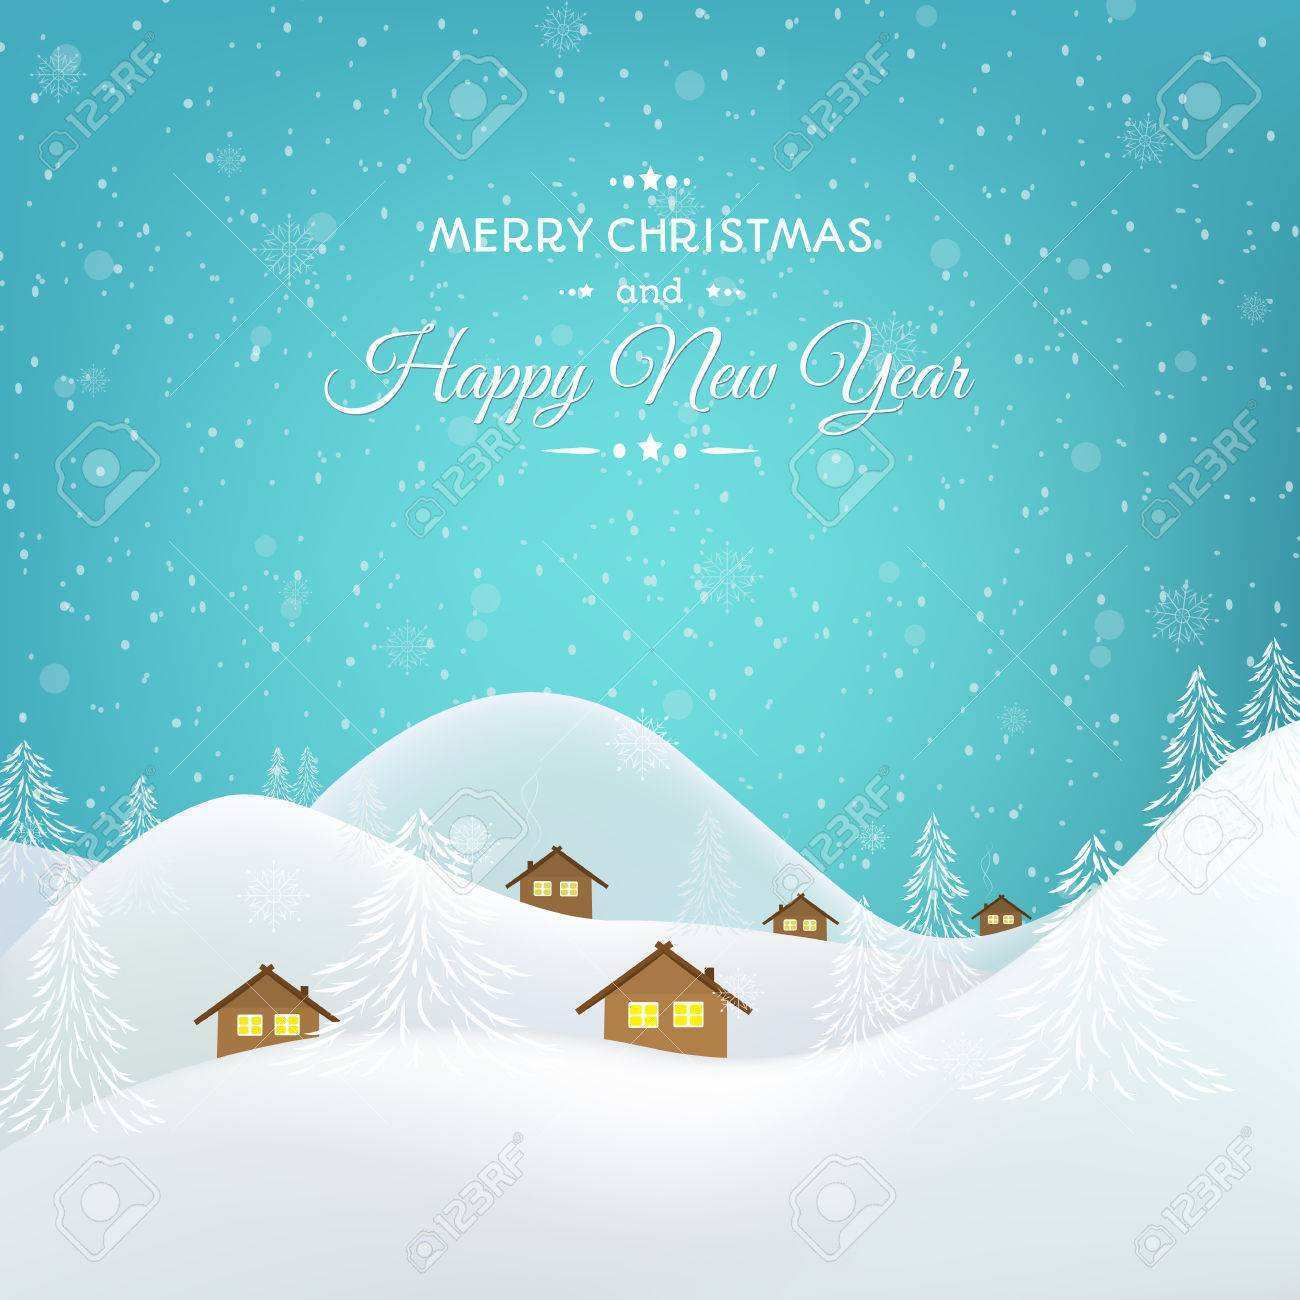 20 Creative Christmas Card Template Snow for Ms Word by Christmas Card Template Snow